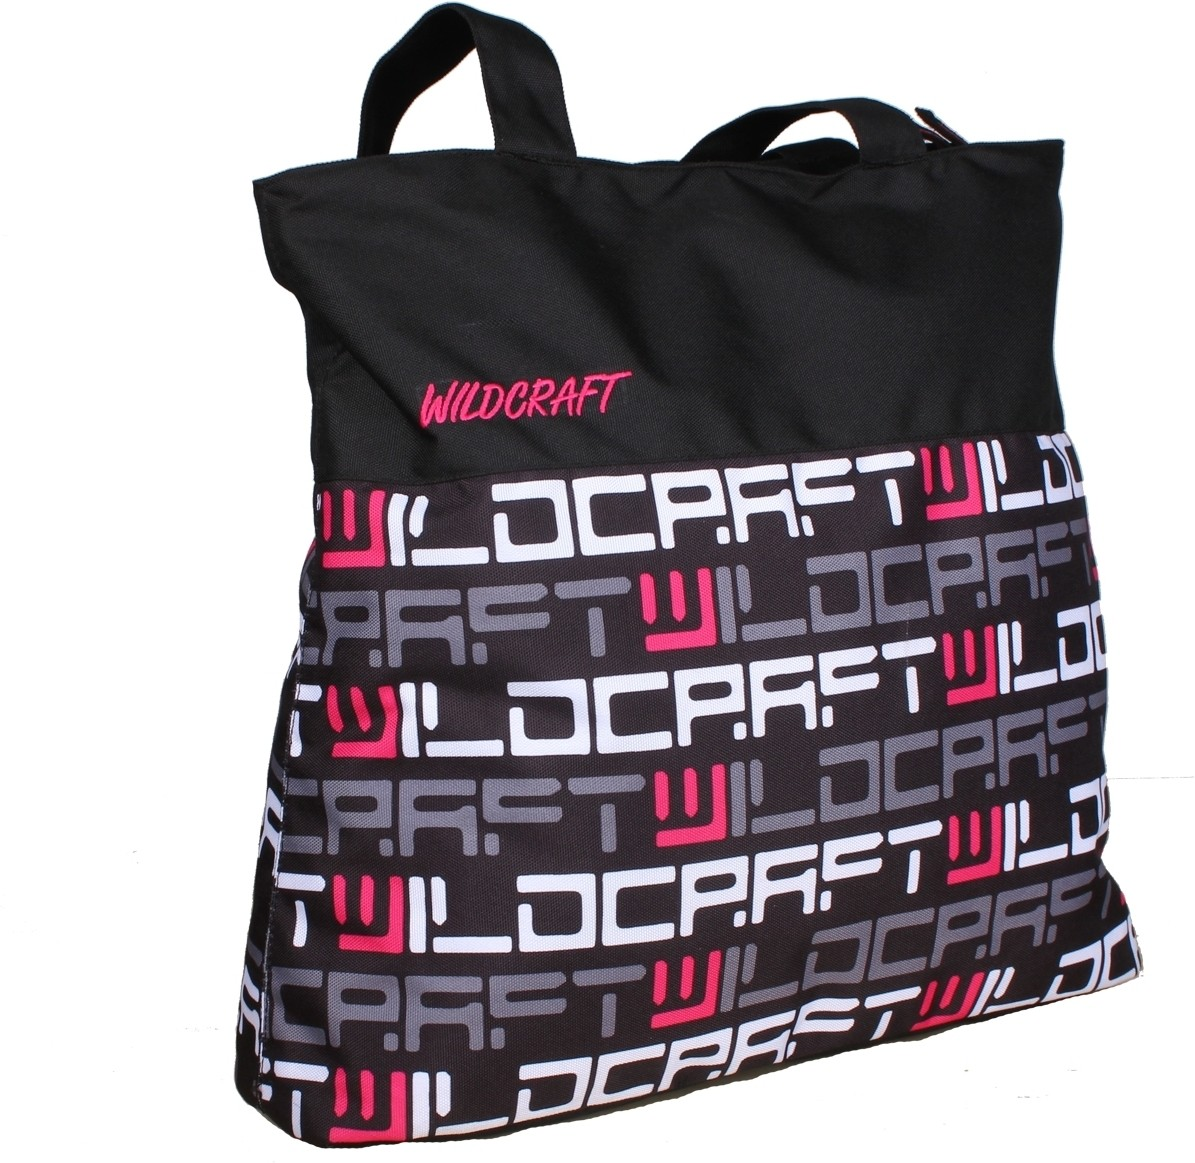 Gym Bag Flipkart: Wildcraft W Hand-held Bag Pink - Price In India